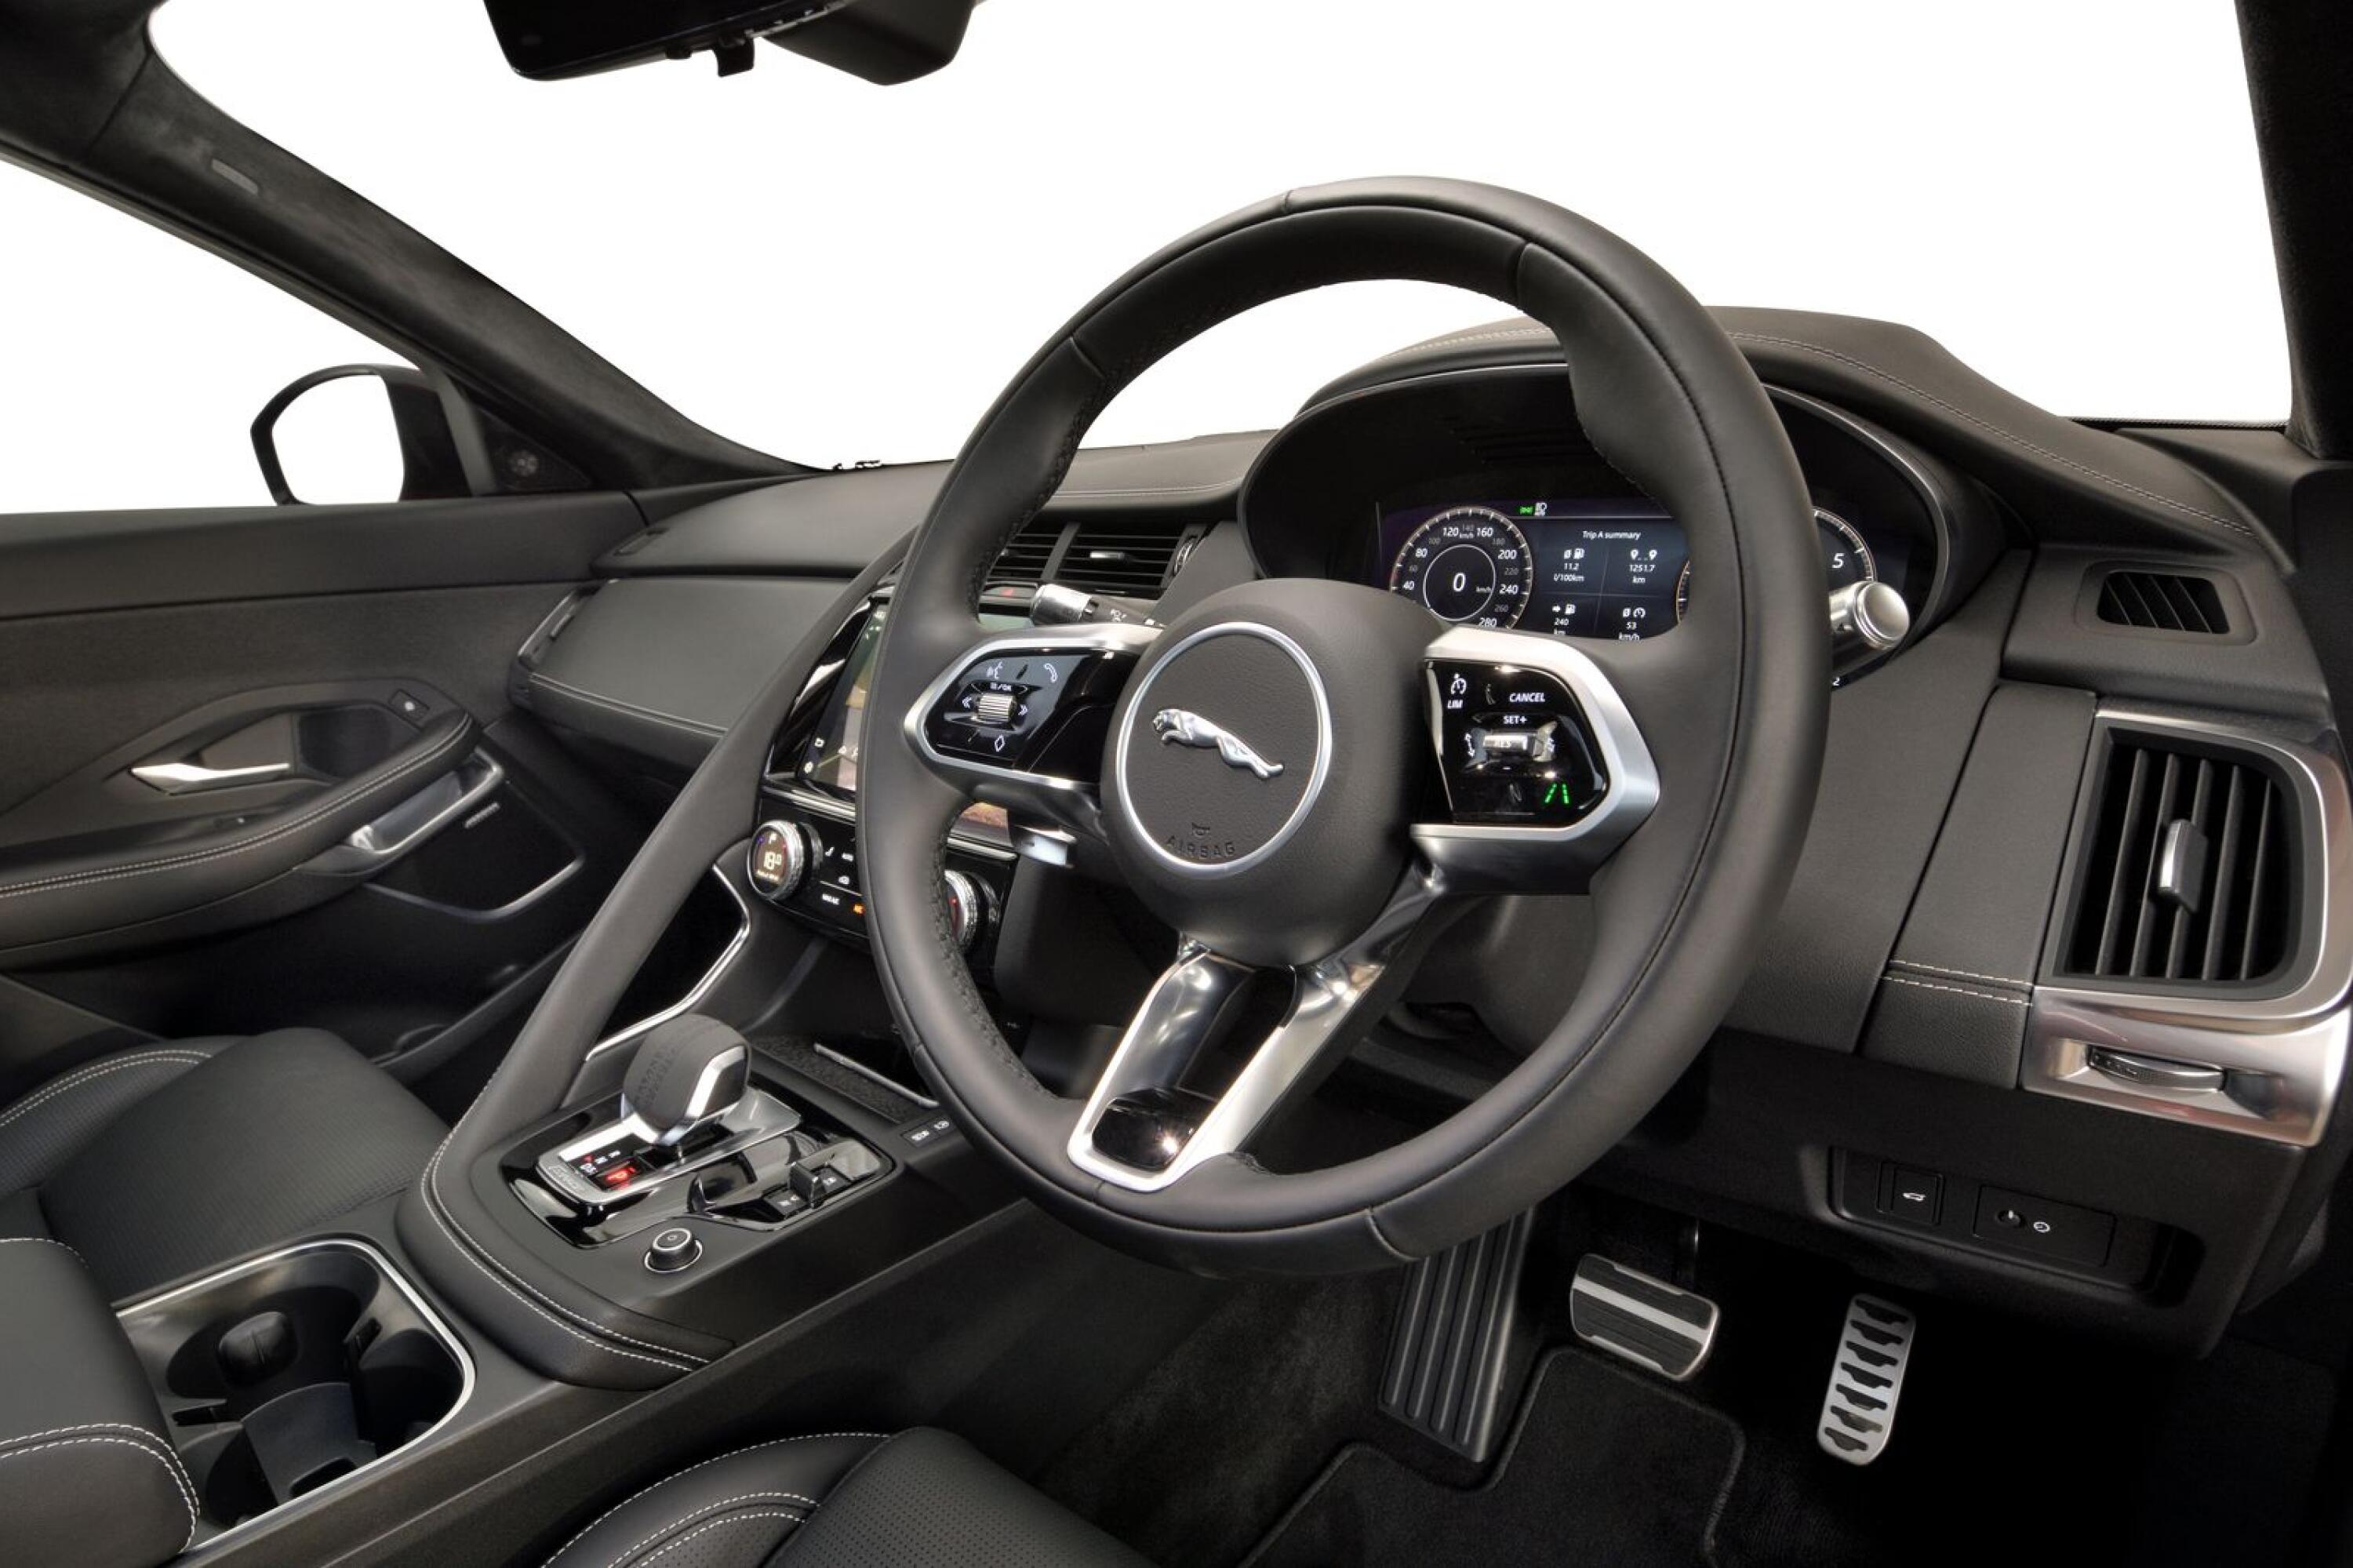 The 2021 Jaguar E-Pace looks more like the company's all-electric I-Pace on the inside now thanks to a new steering wheel and striking detailing